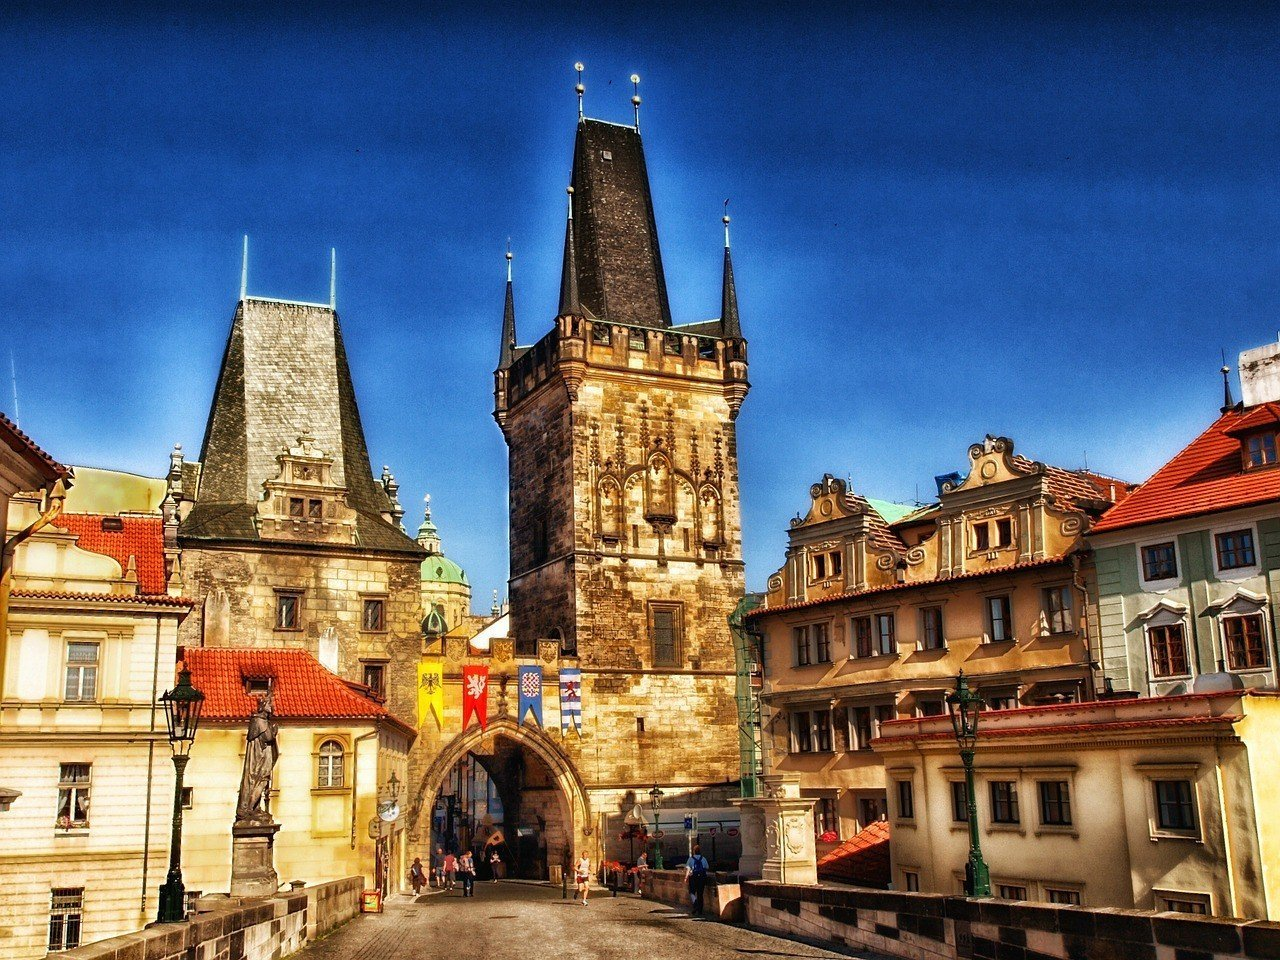 Sarah Slattery, The Travel Expert talks about Prague